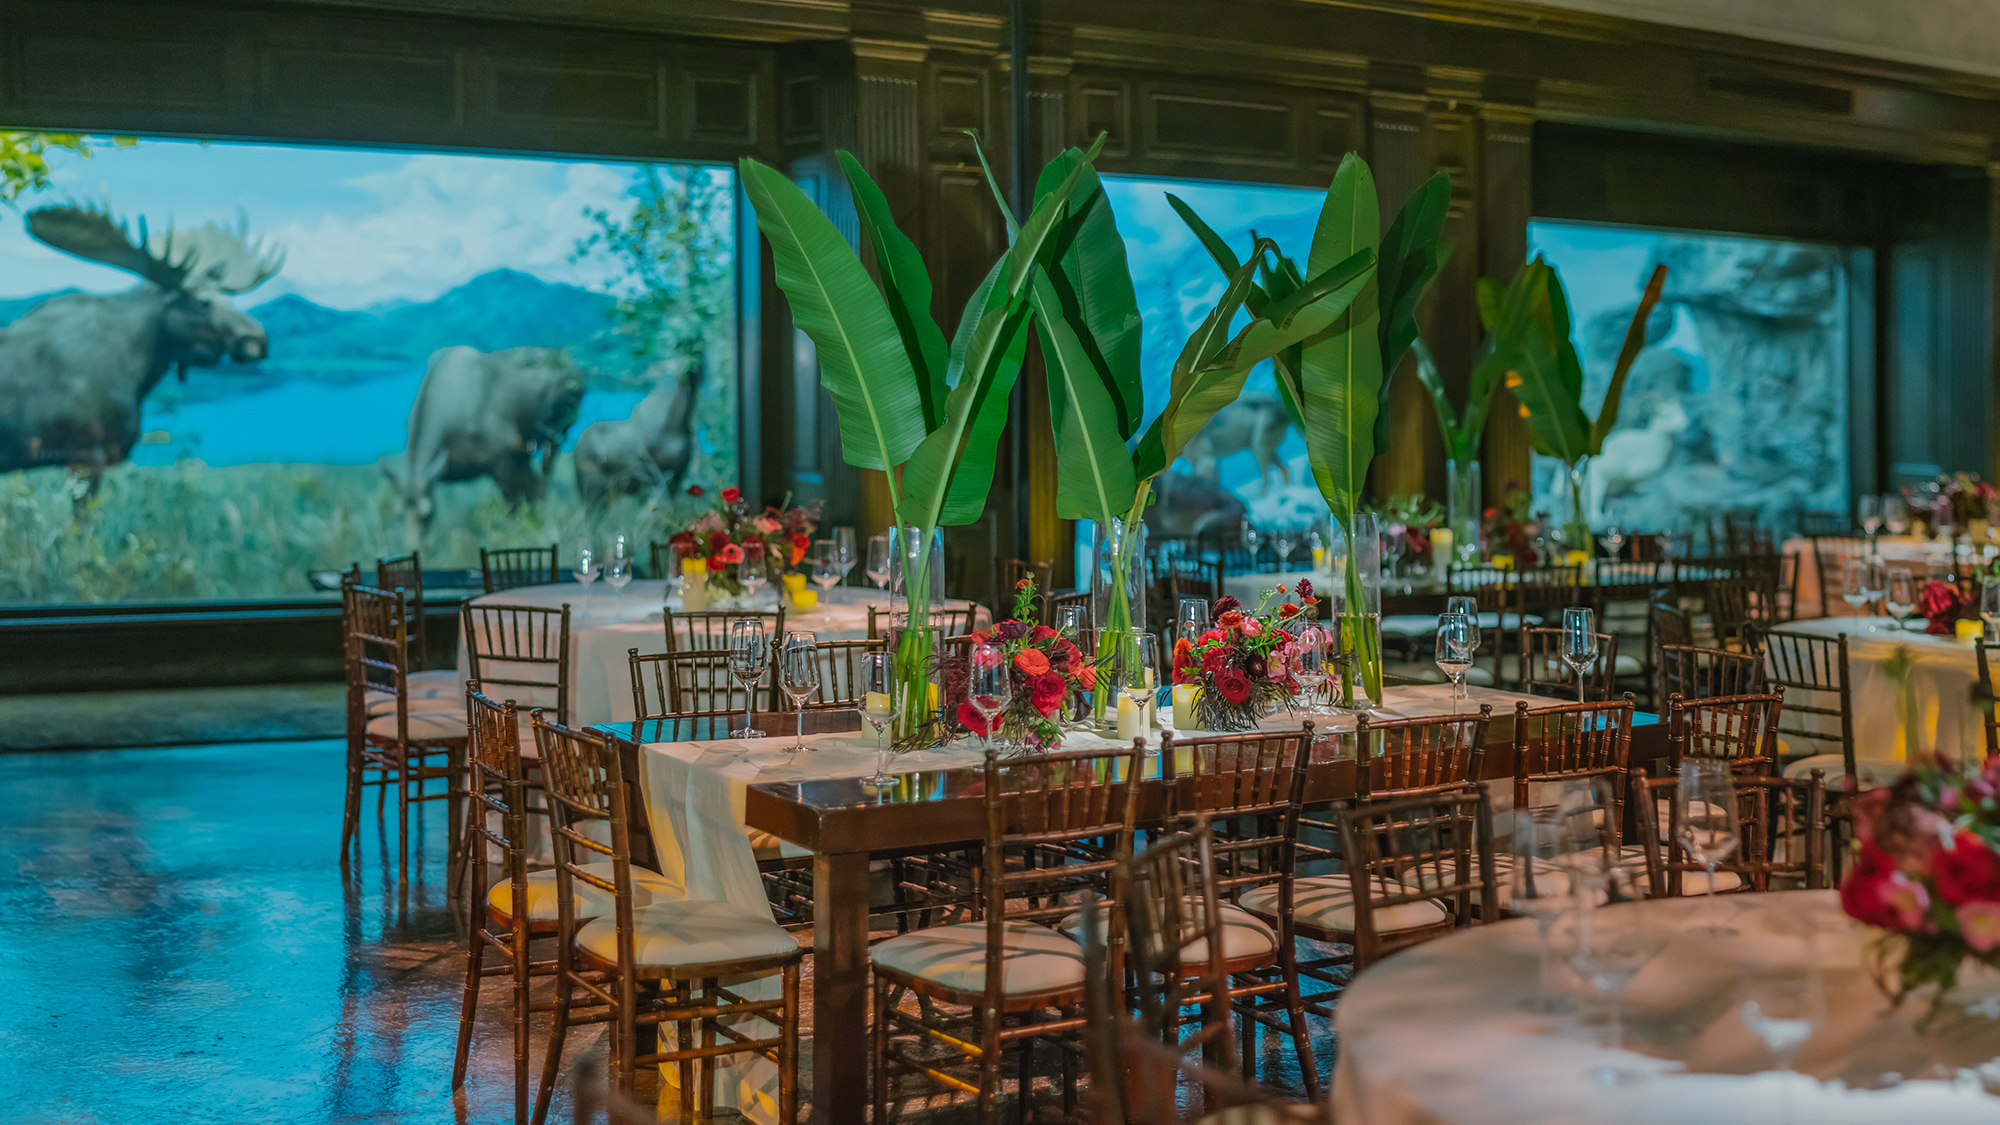 duff goldman johnna colbry wedding reception space